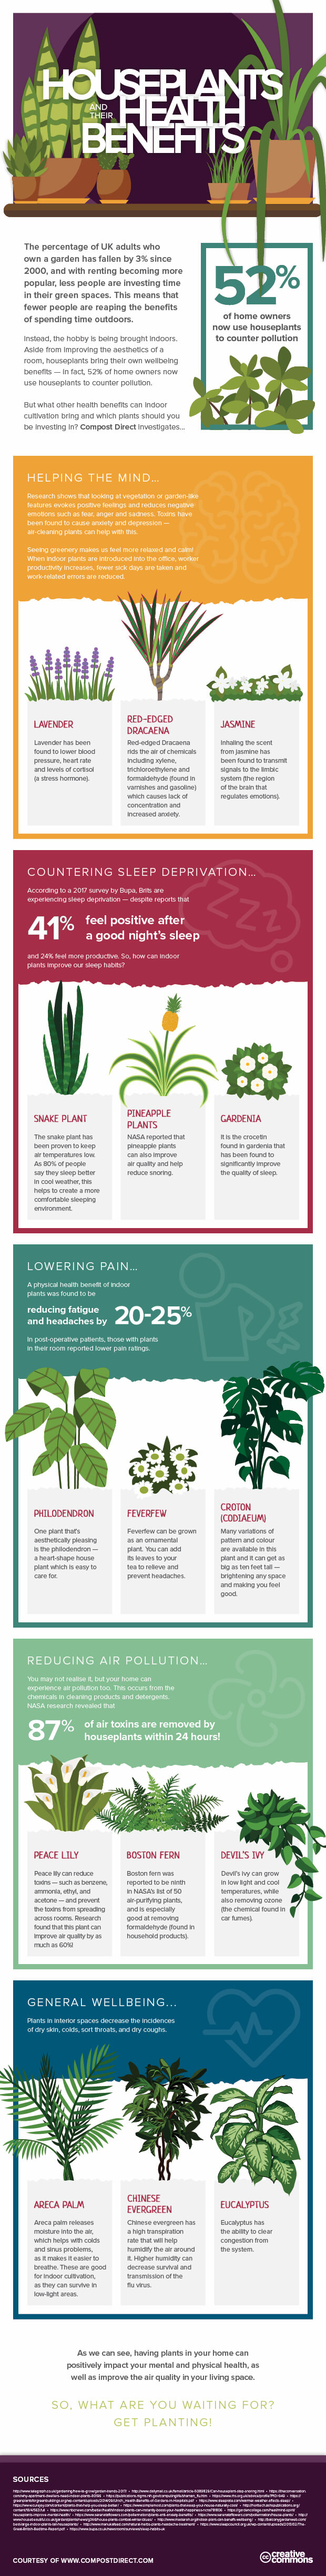 house plants and their health benefits